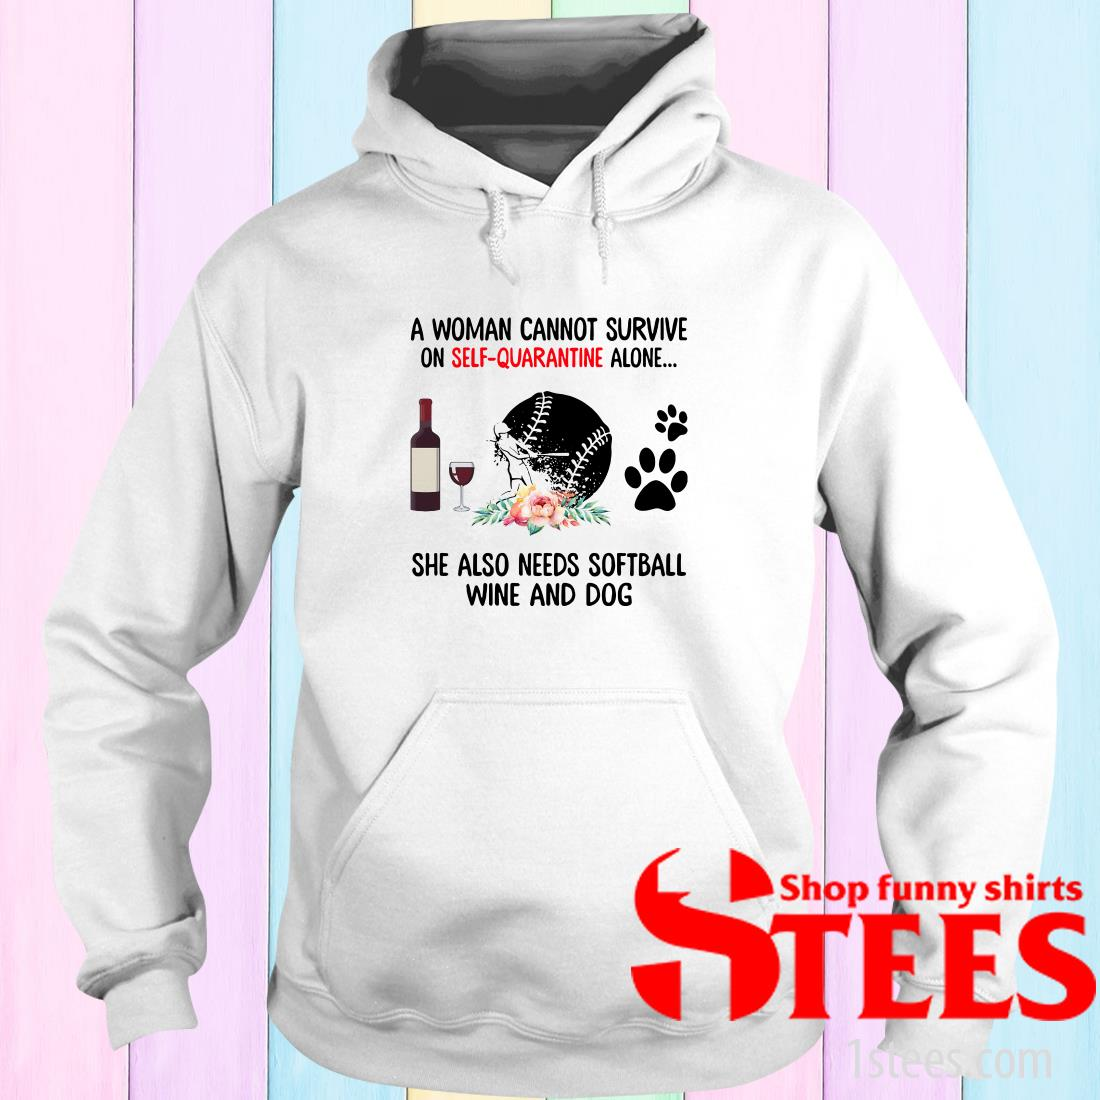 A Woman Cannot Survive On Self Quarantine Alone She Needs Wine Dog Softball Hoodies